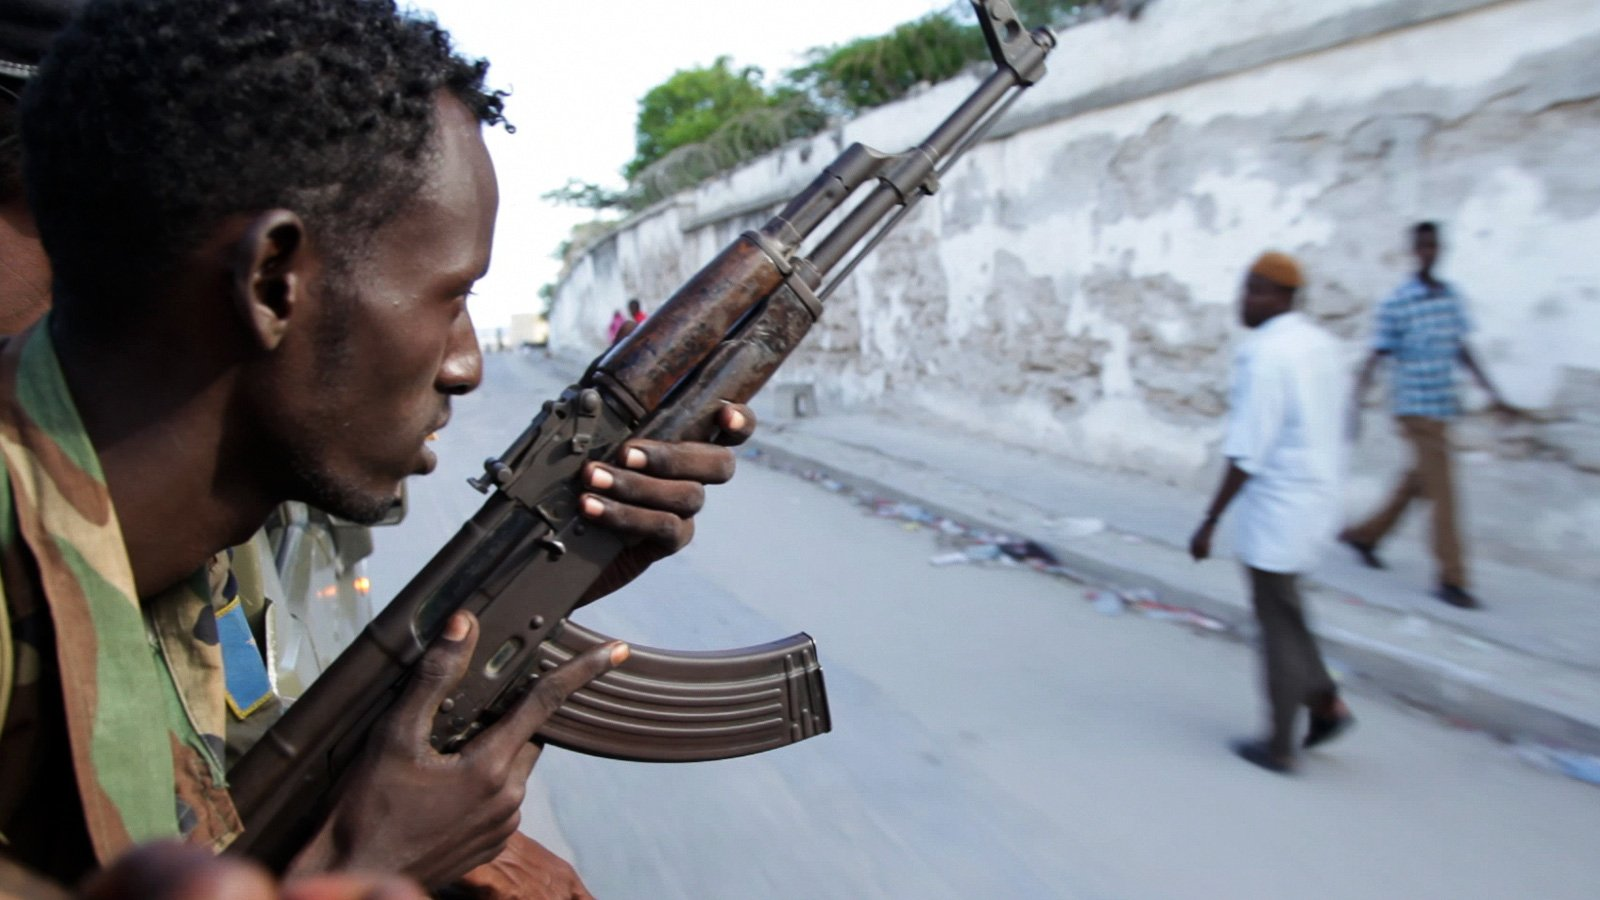 A soldier of the Somali National Army travels through the streets of Mogadishu, Somalia, in the back of a technical. The EU, Britain and other nations pledged significant funds for the reform of the Somali security forces at this year's London Conference